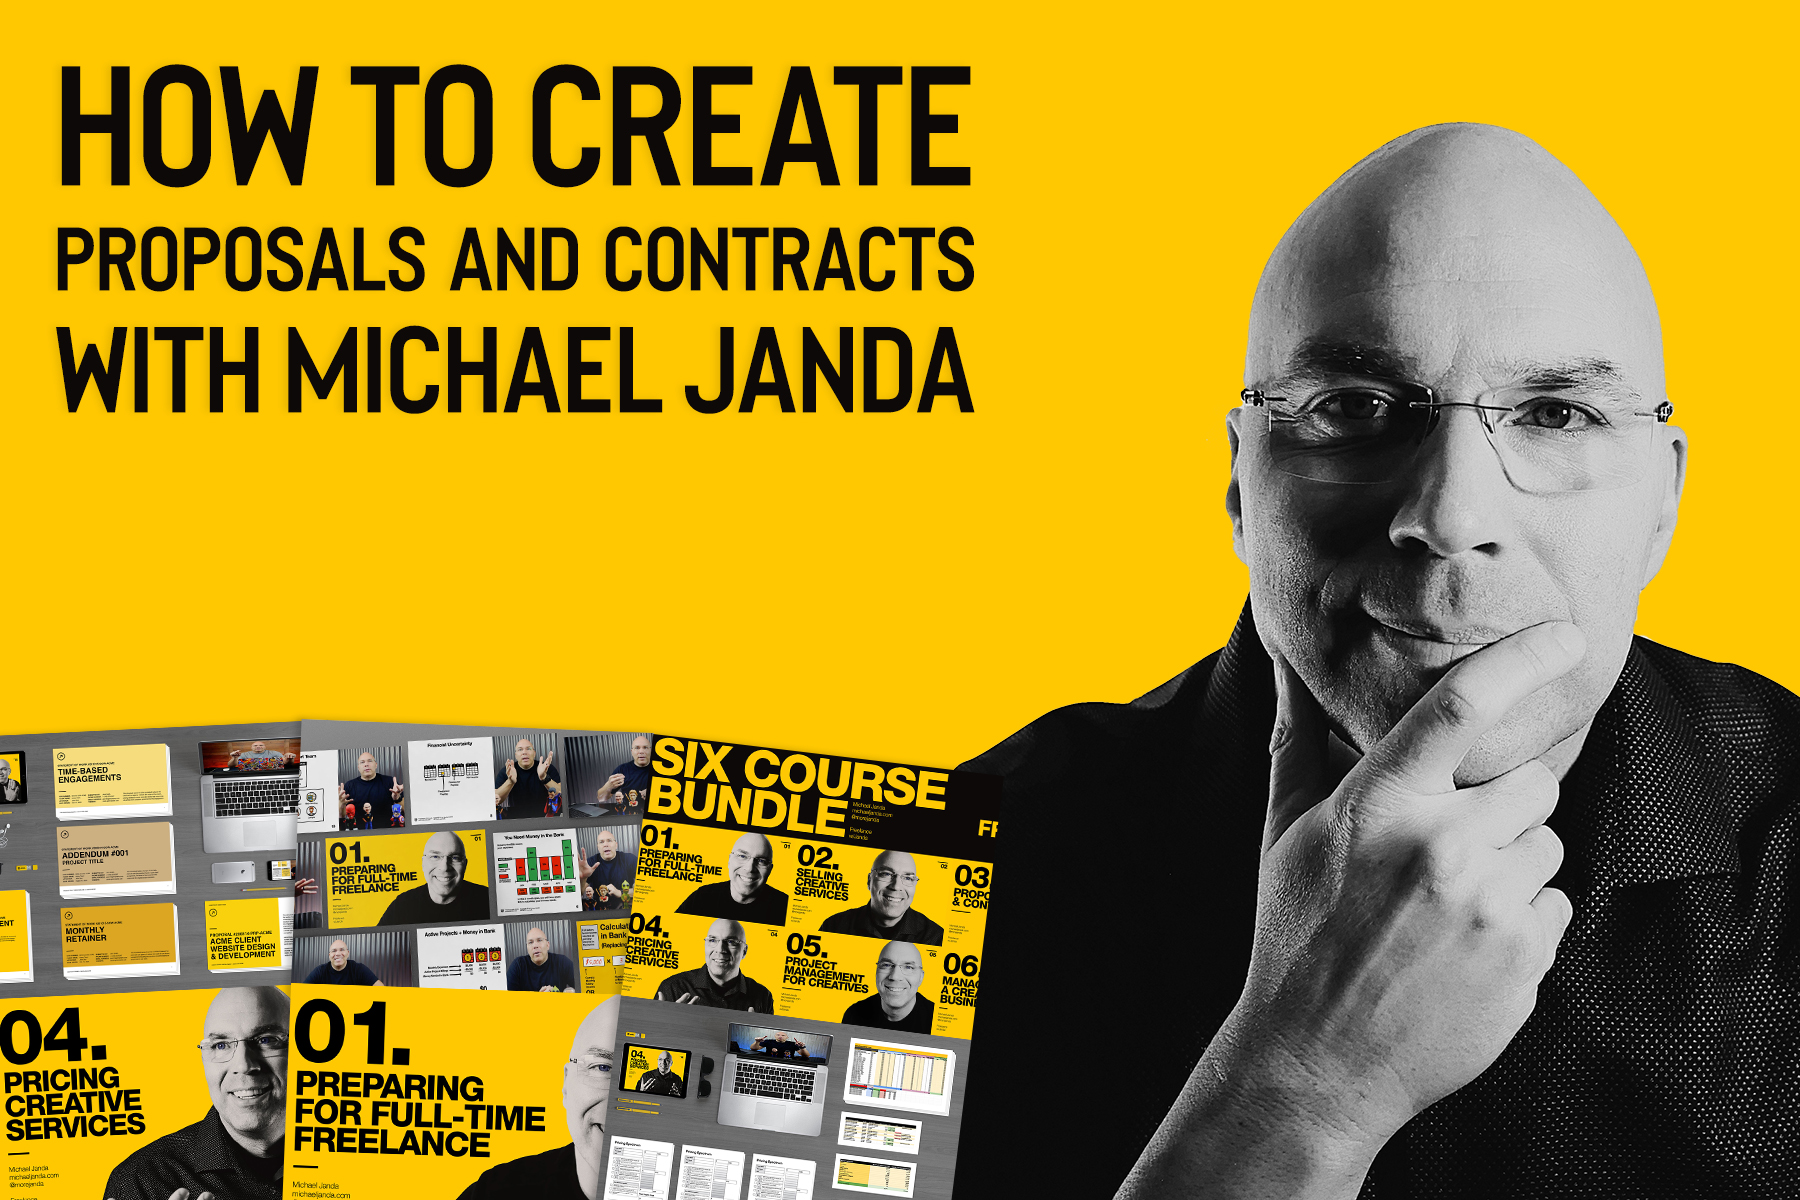 https://www.designcuts.com/wp-content/uploads/2020/06/Learn_Section-Crowdcast-Micheal-Janda-no-date-1.jpg